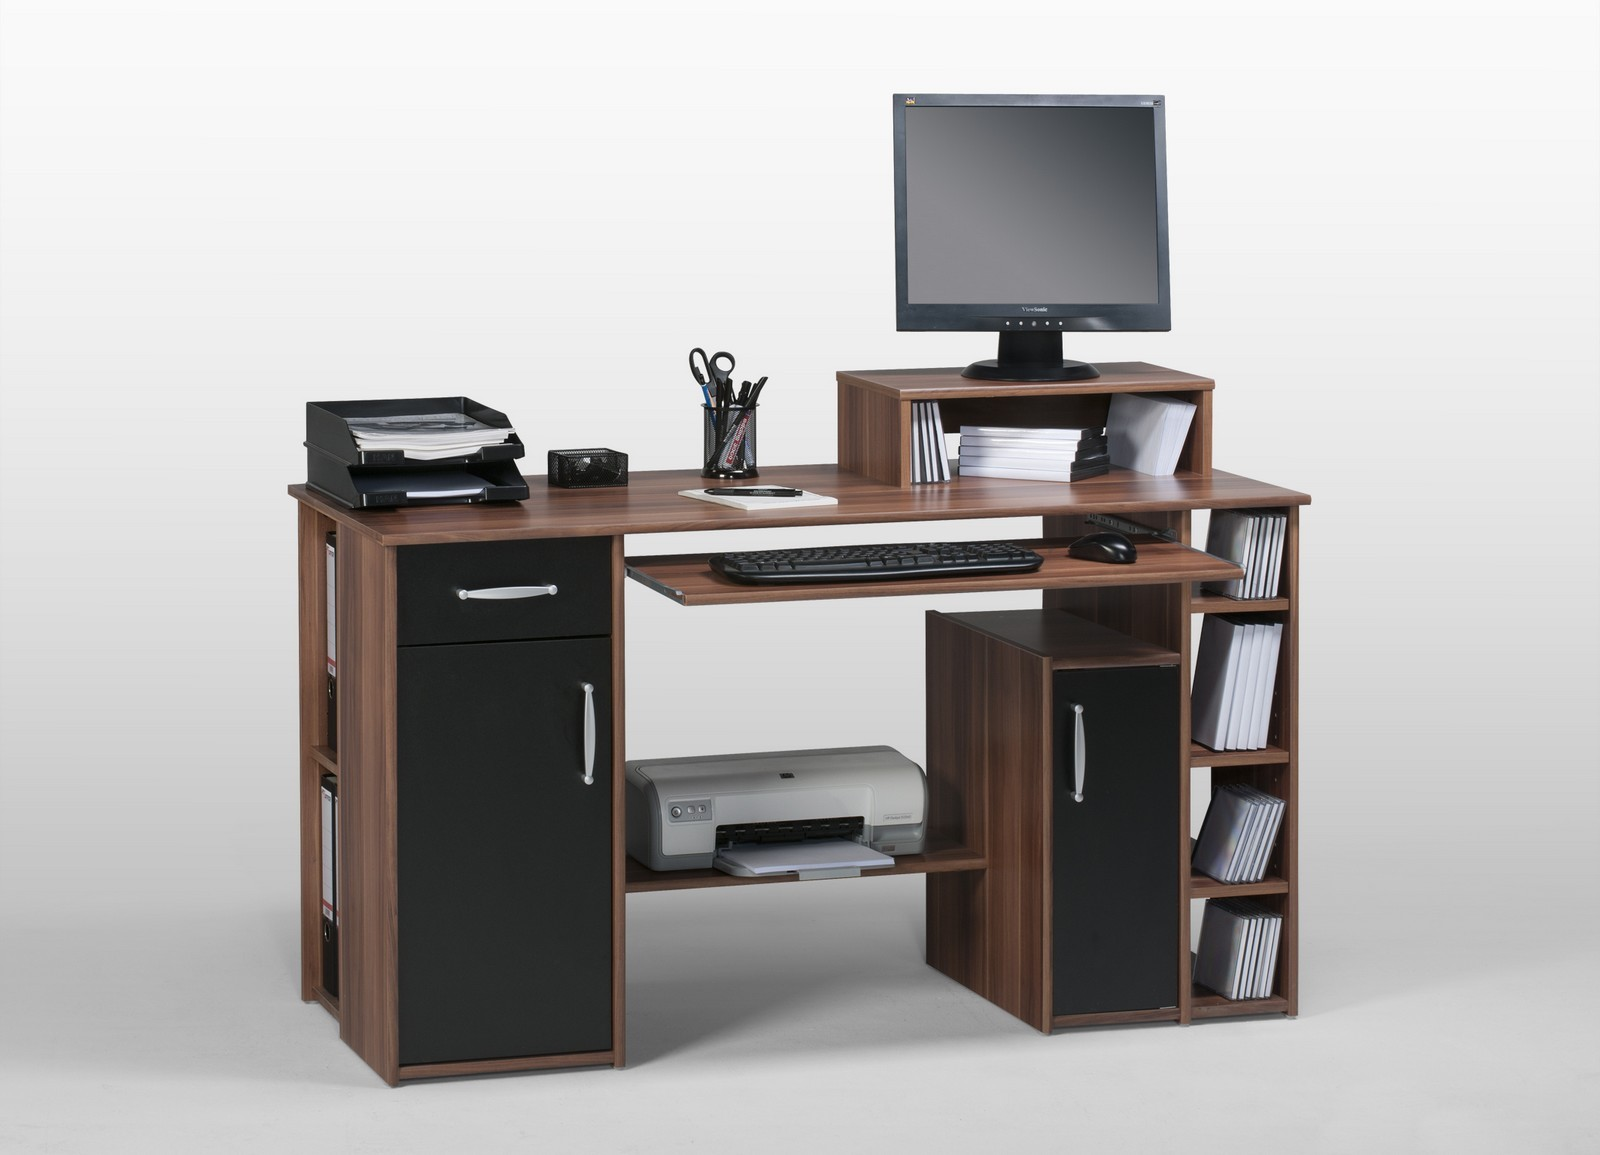 computertisch nussbaum schwarz bestseller shop f r m bel und einrichtungen. Black Bedroom Furniture Sets. Home Design Ideas